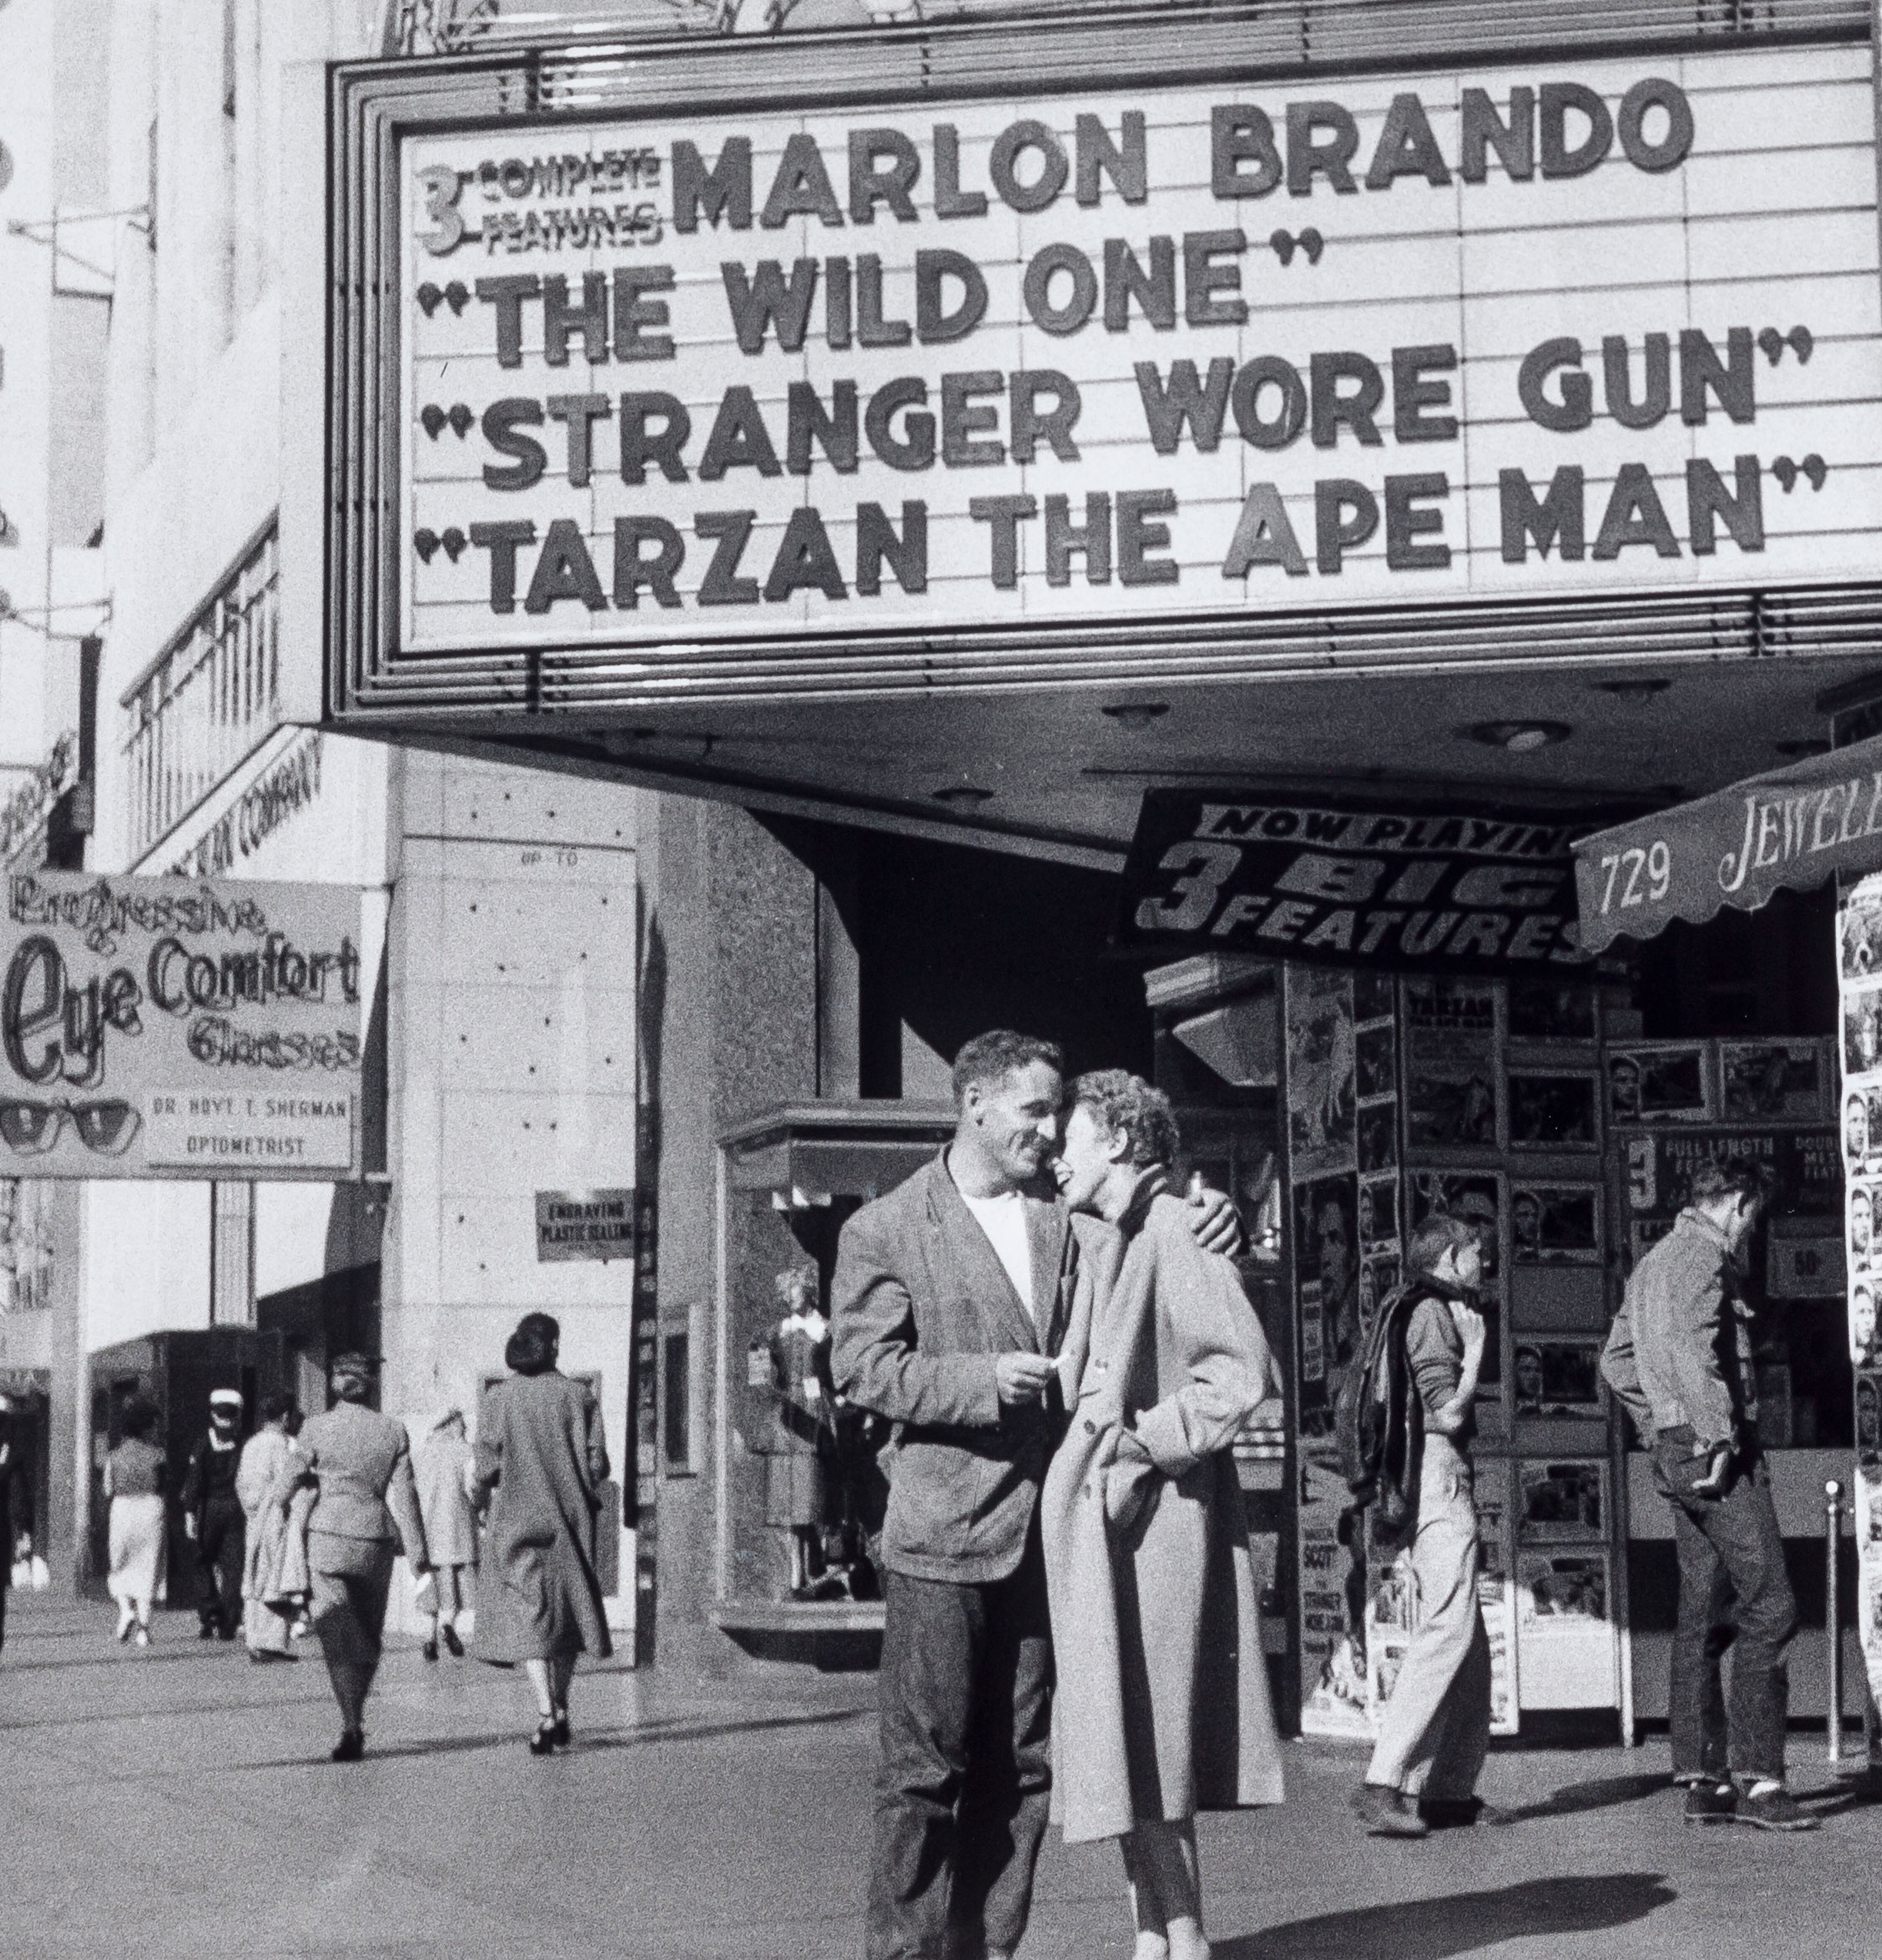 A couple under a theatre marquee